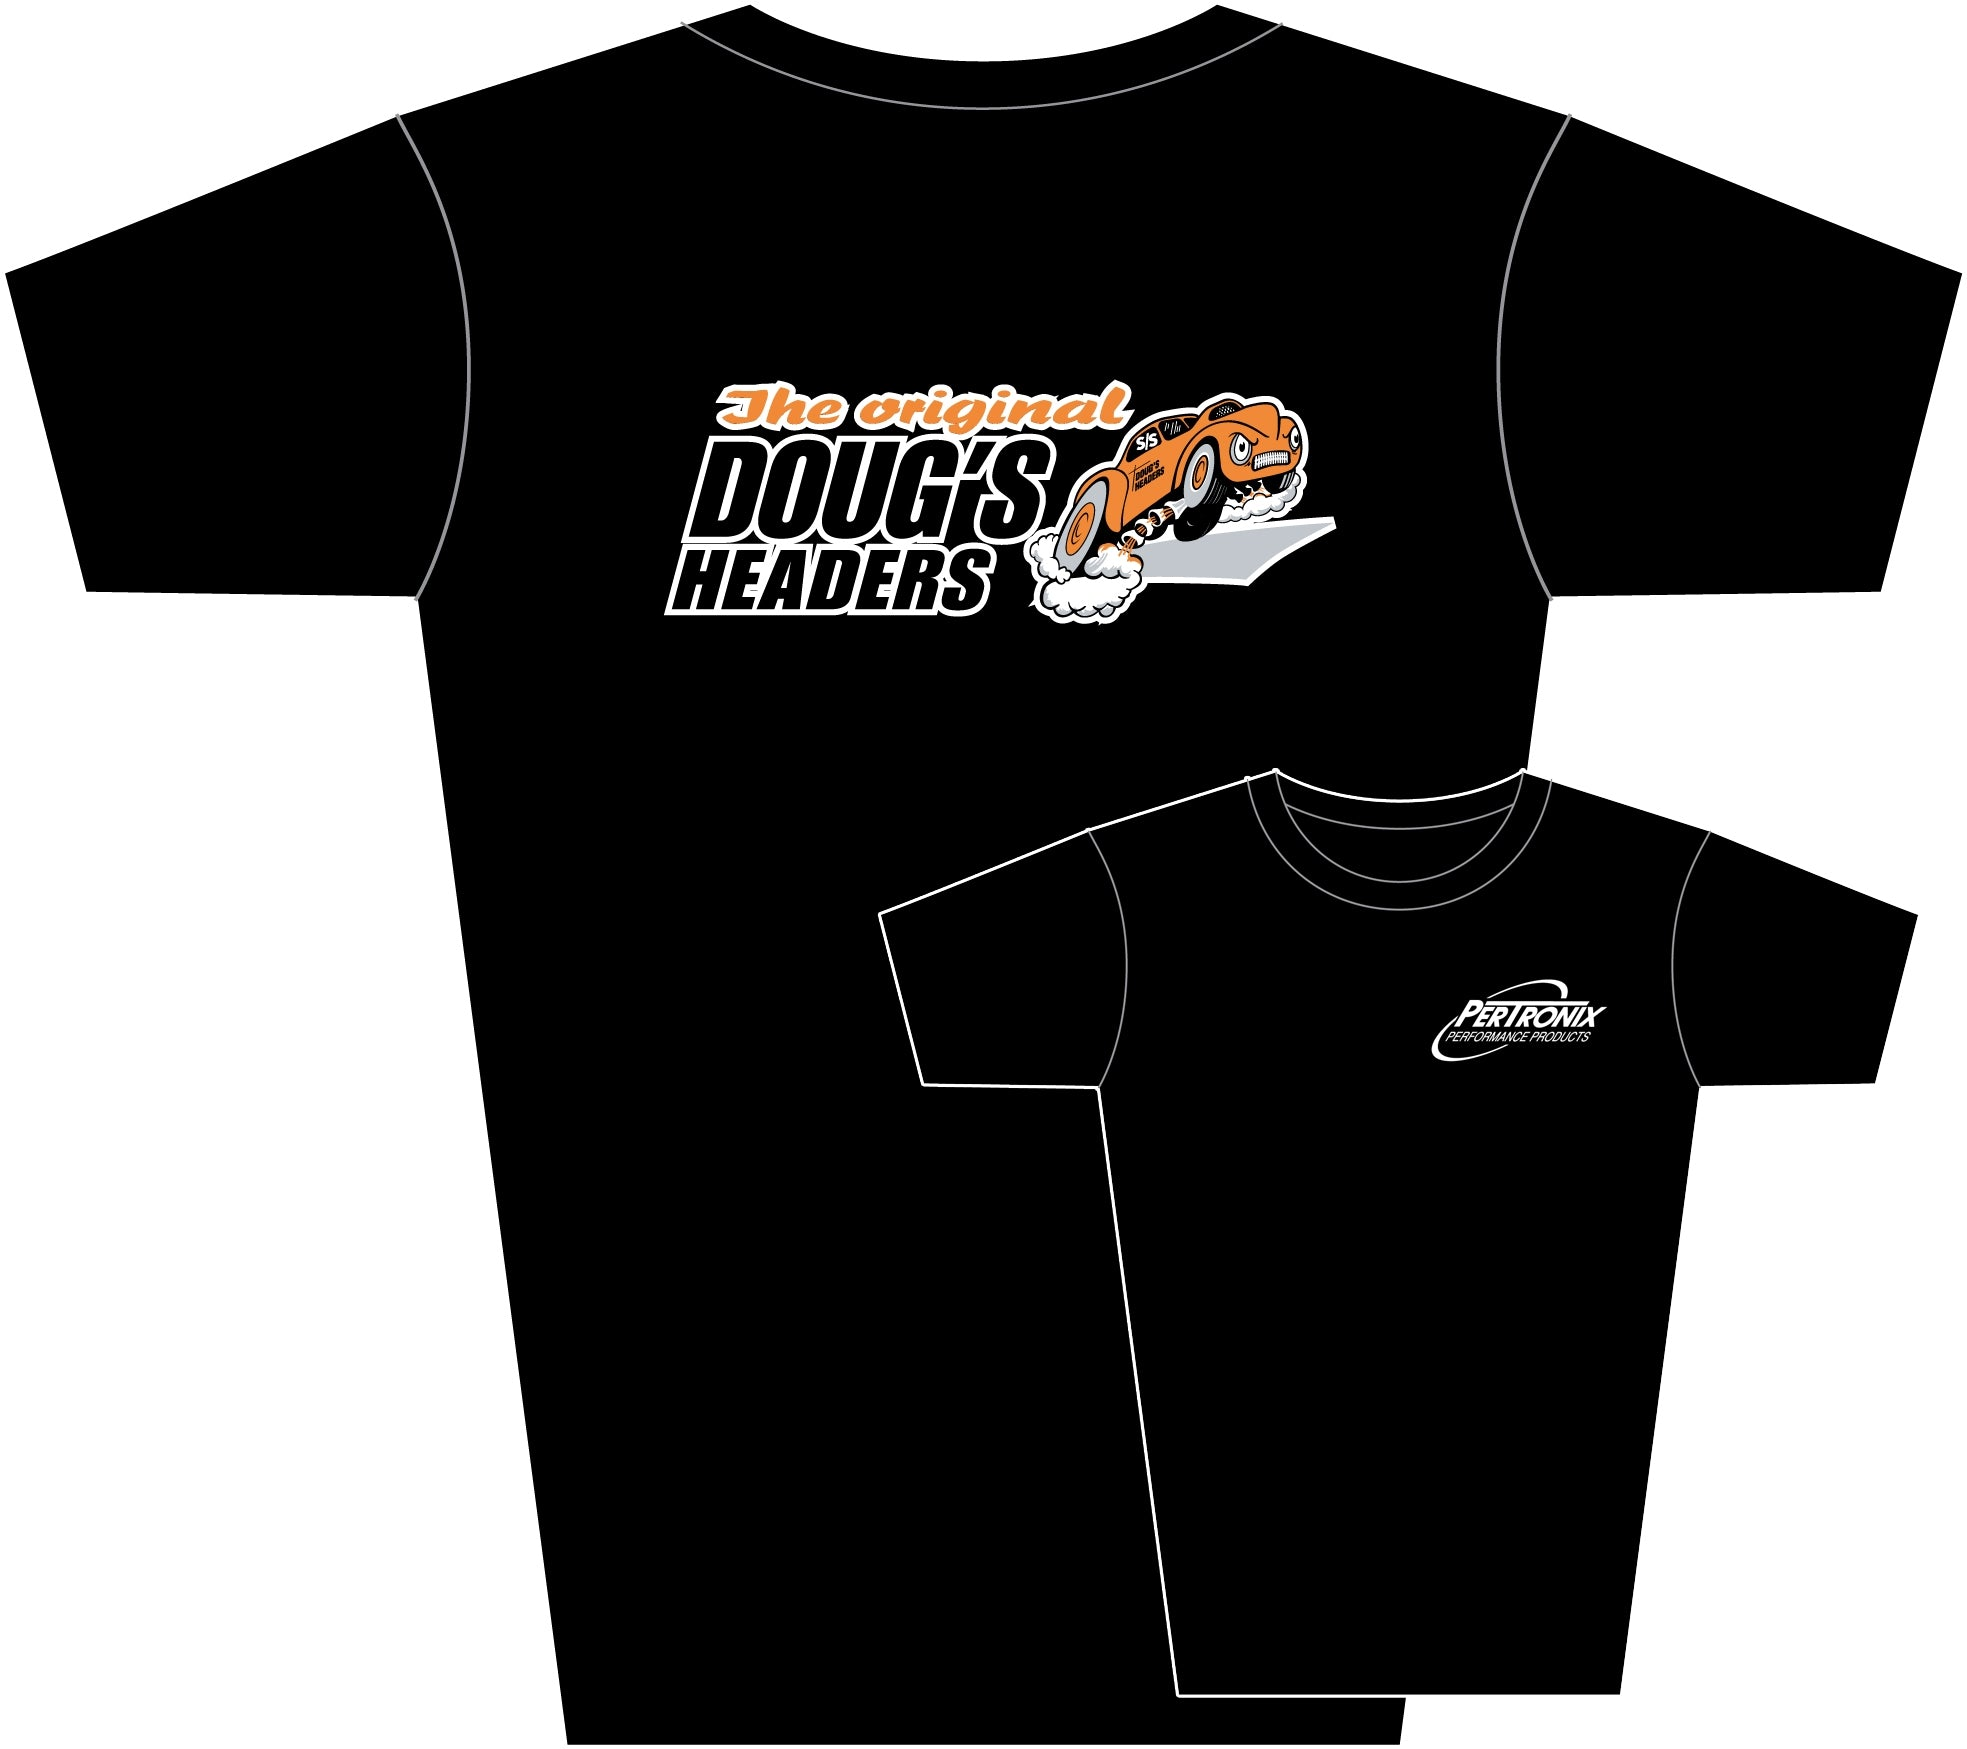 Doug's Headers TS202 Tee Shirt Black Large